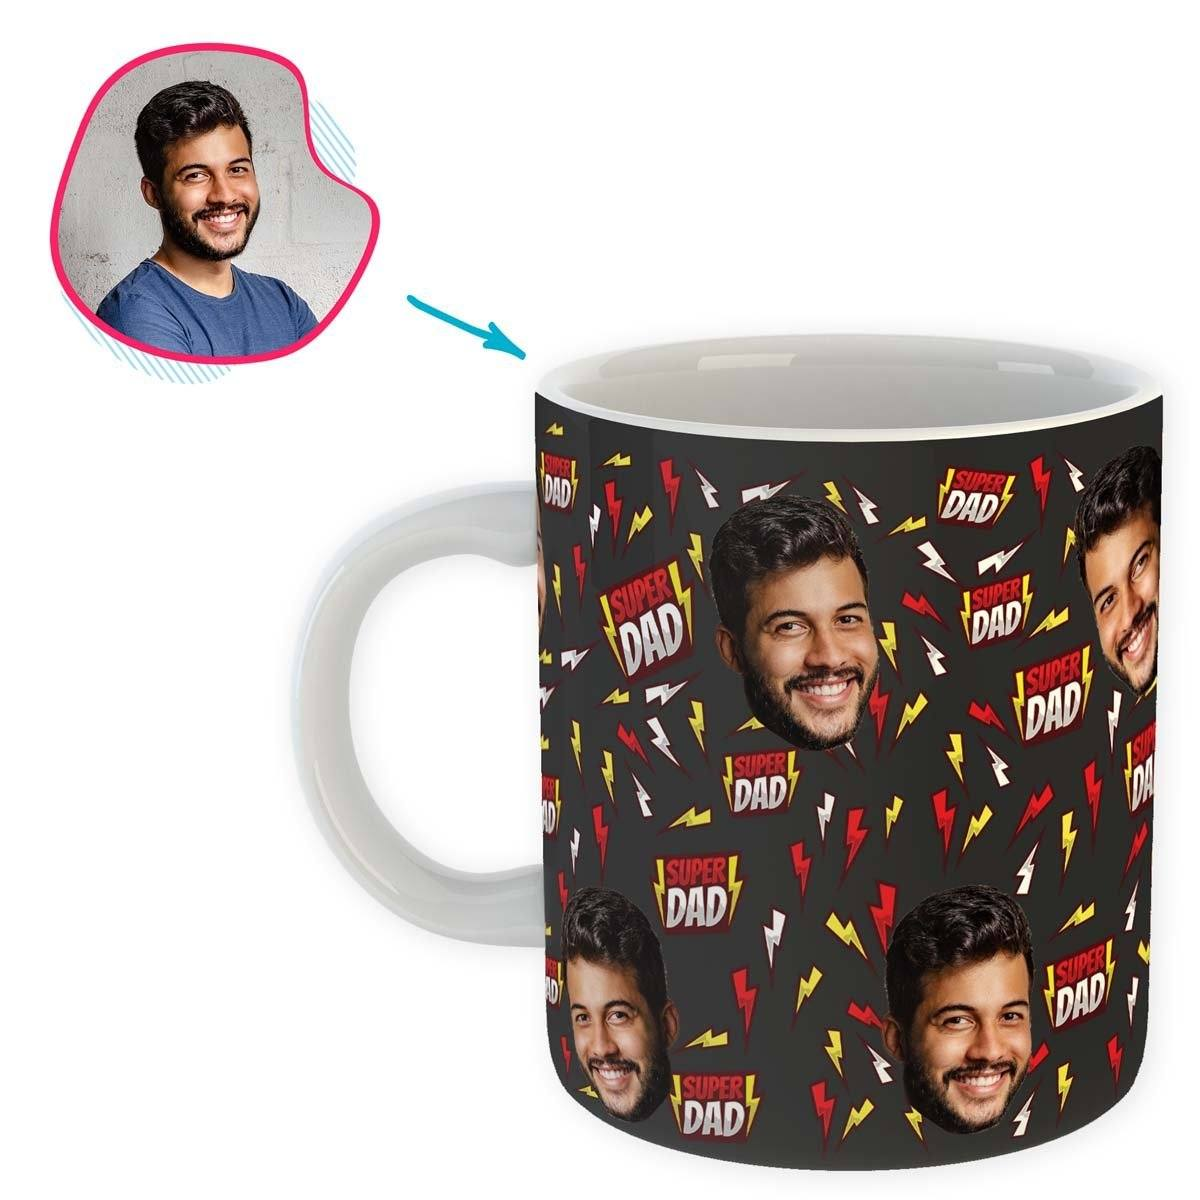 dark Super Dad mug personalized with photo of face printed on it